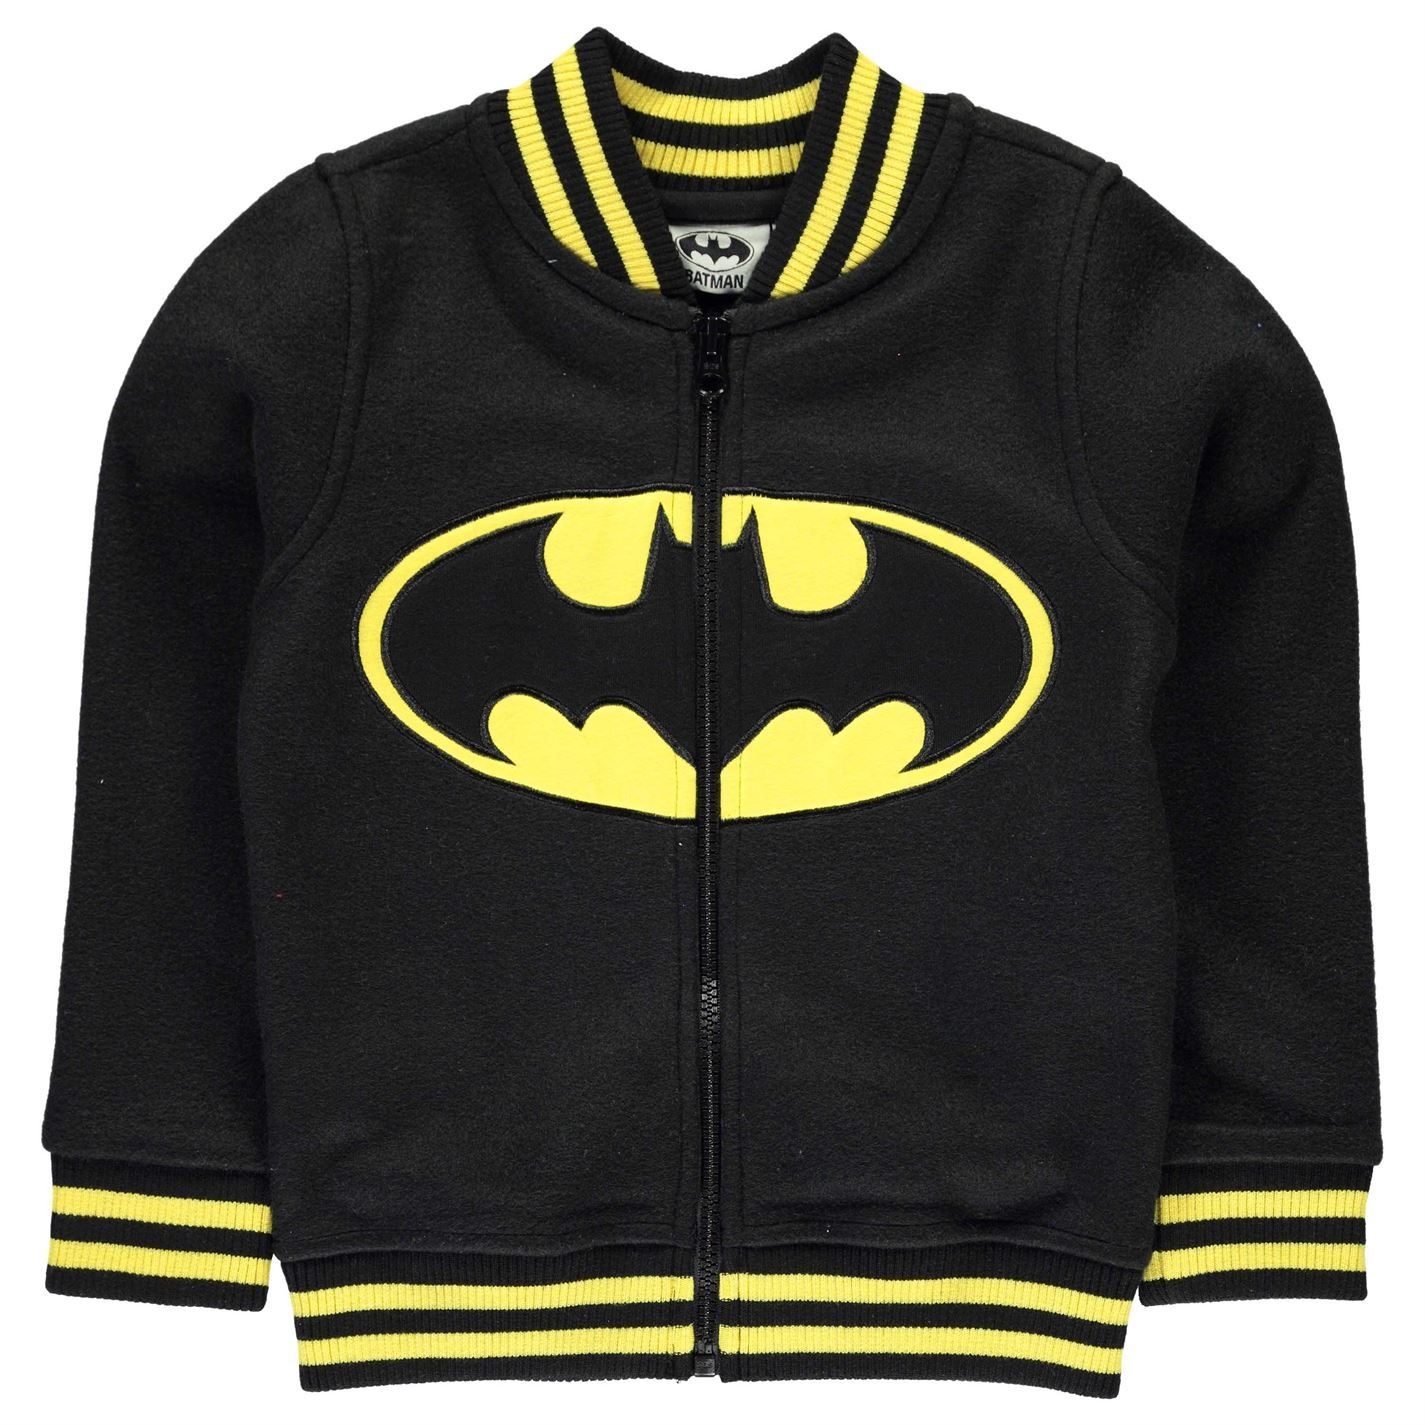 Batman Baseball Jacket Infant Boys Black/Yellow Coat Outerwear | eBay